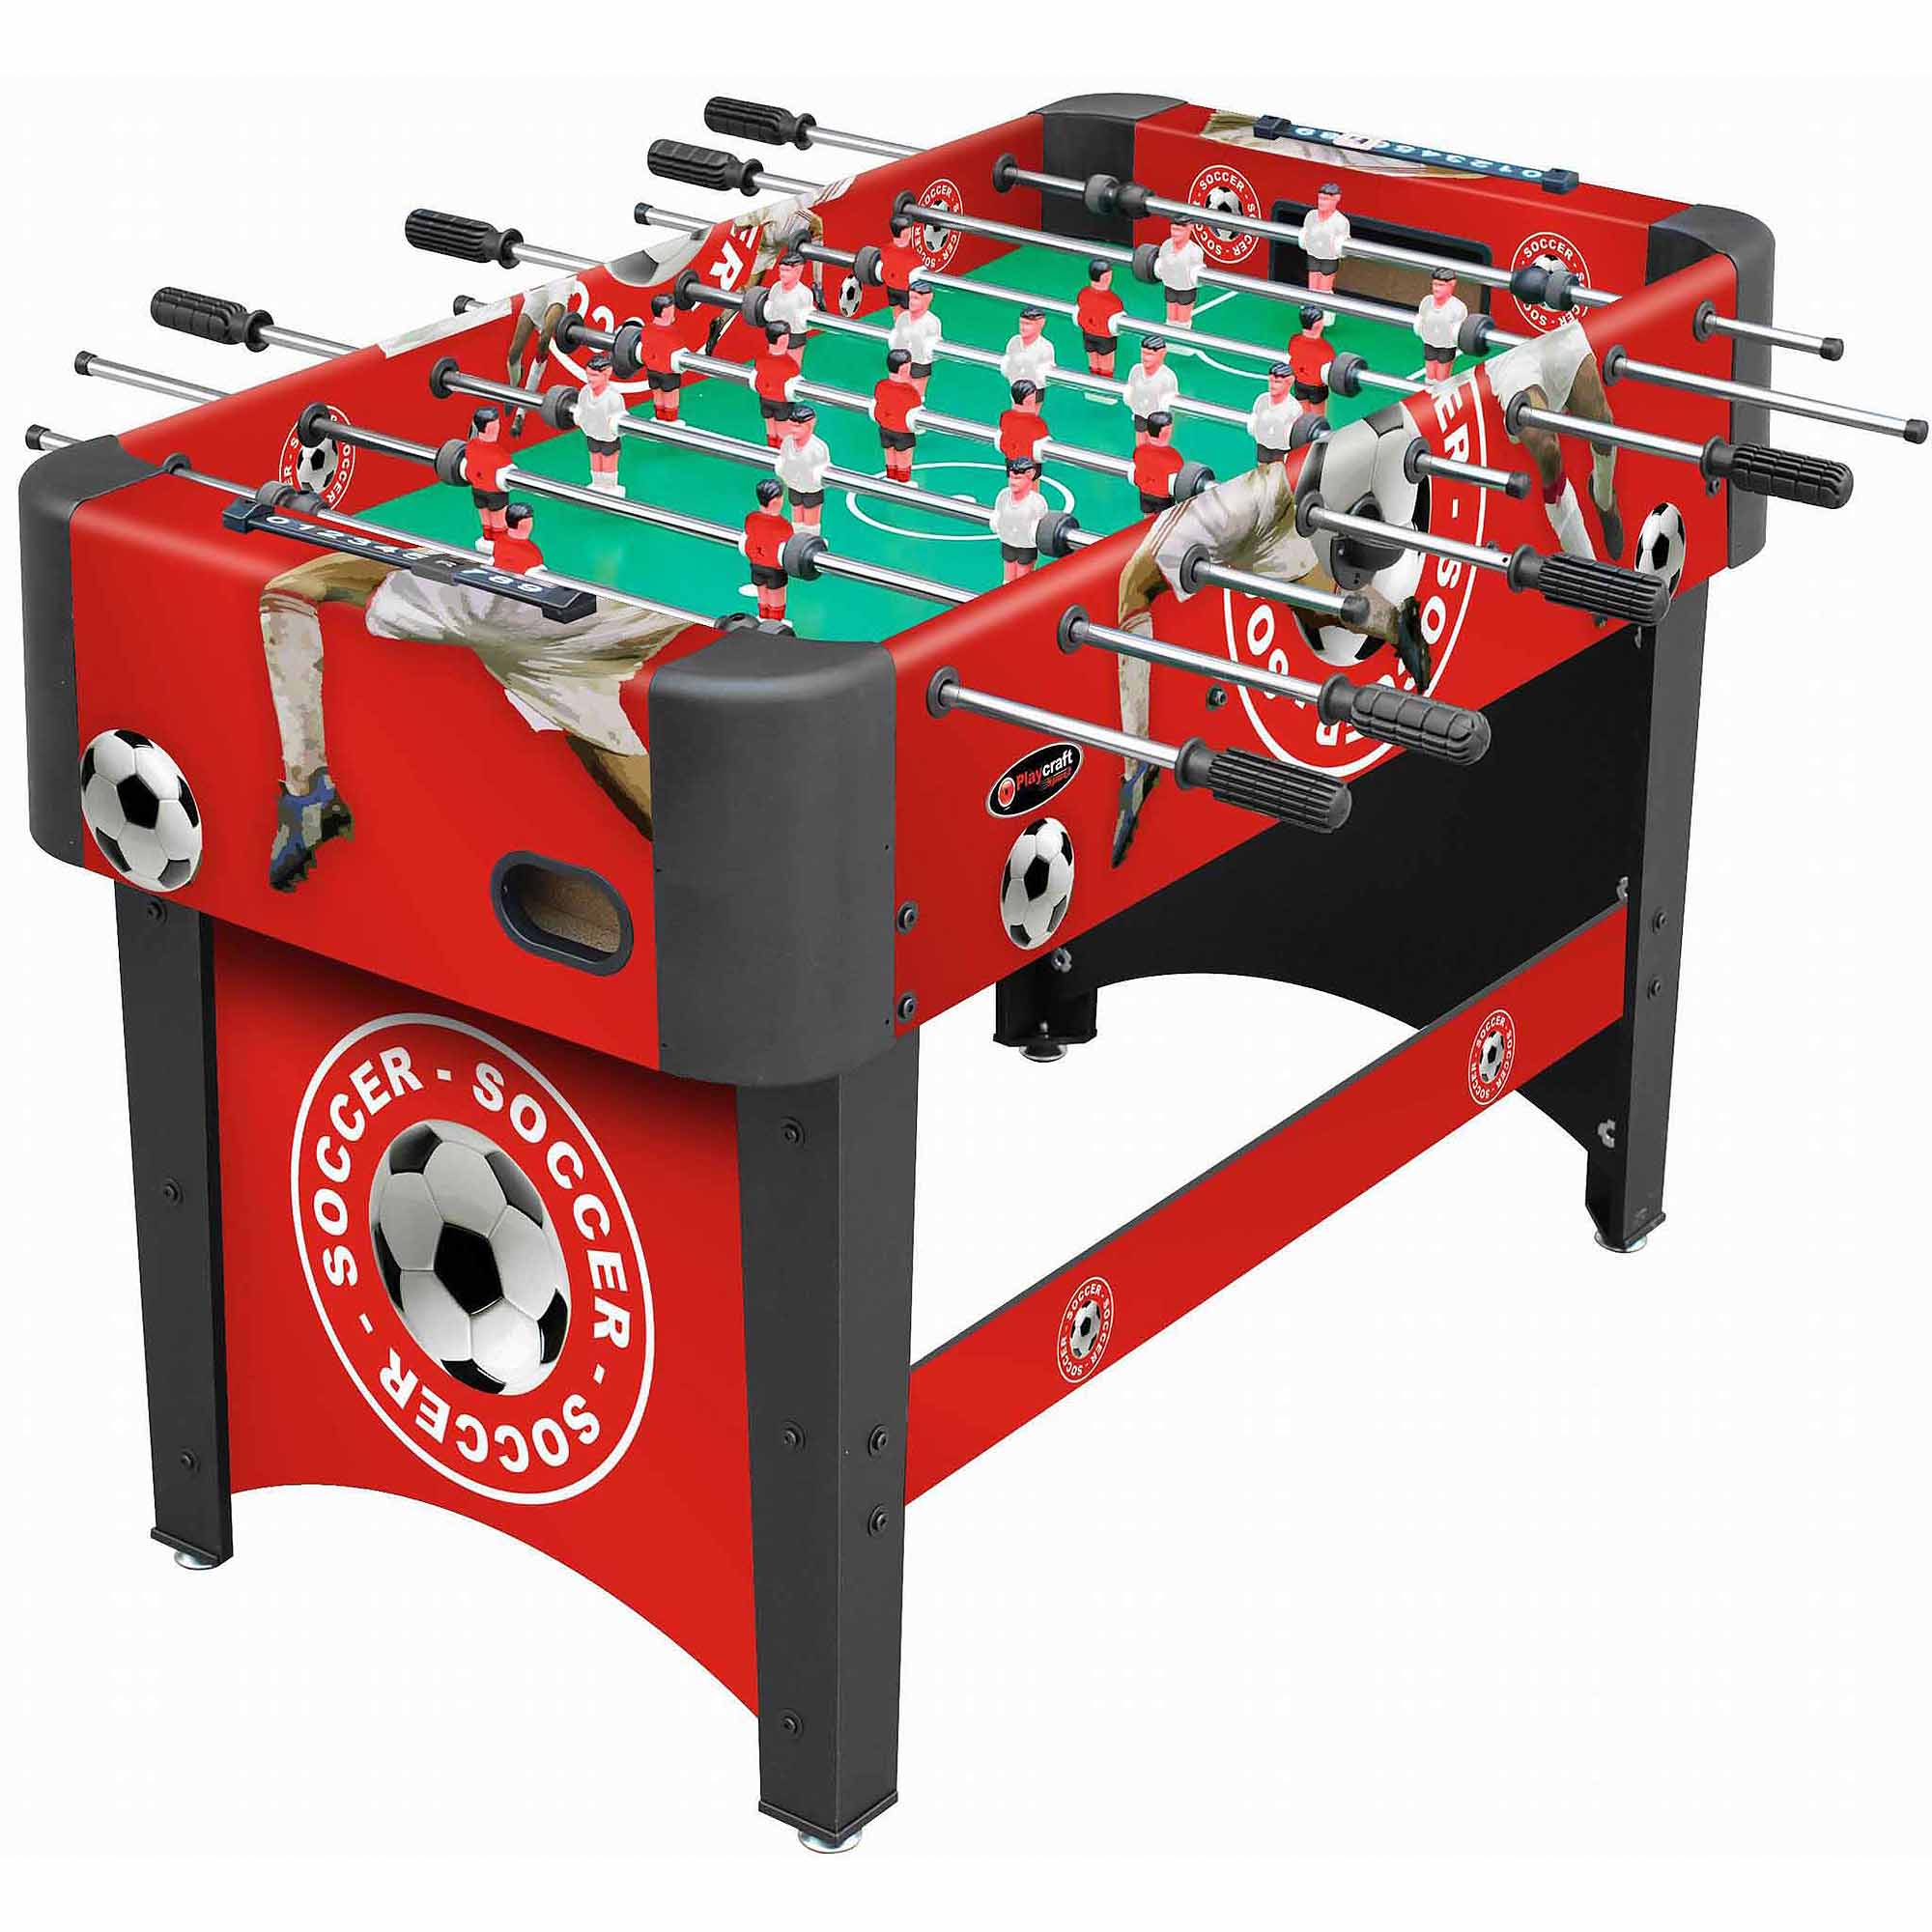 "Playcraft Sport 48"" Foosball Table, Red"